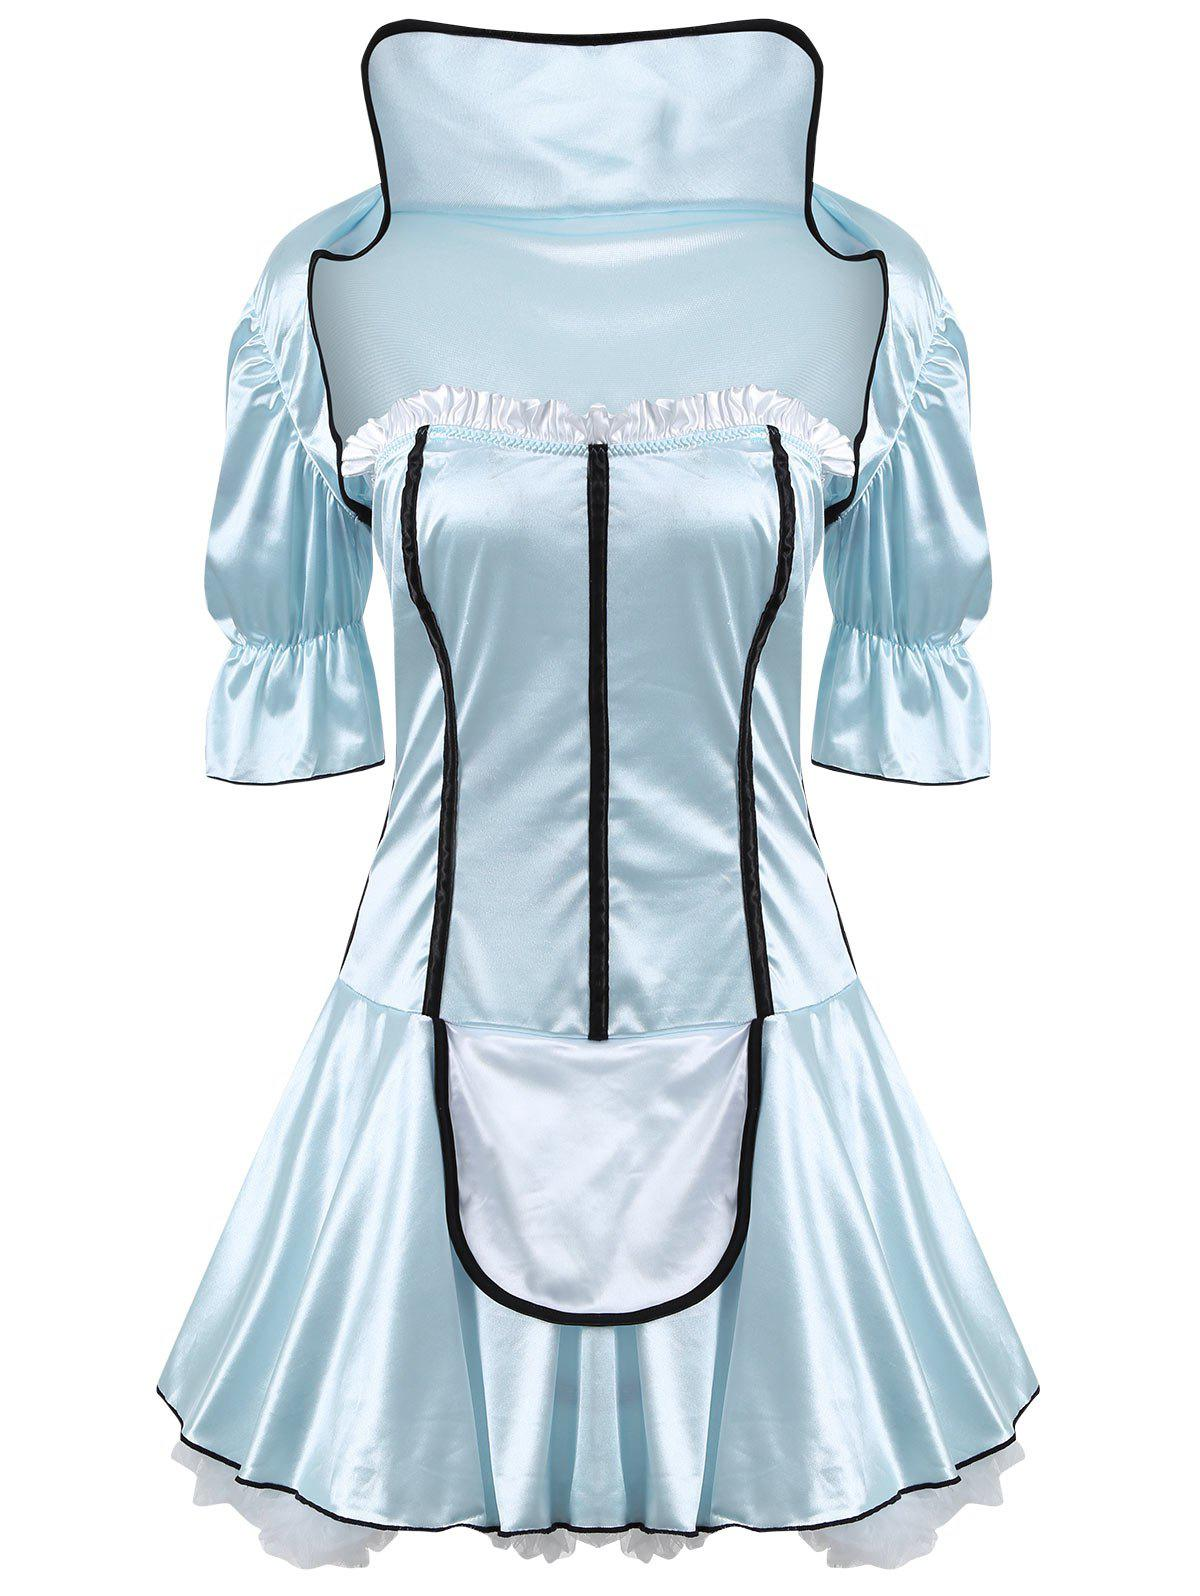 Housemaid Satin Cosplay Costume Dress - WINDSOR BLUE ONE SIZE